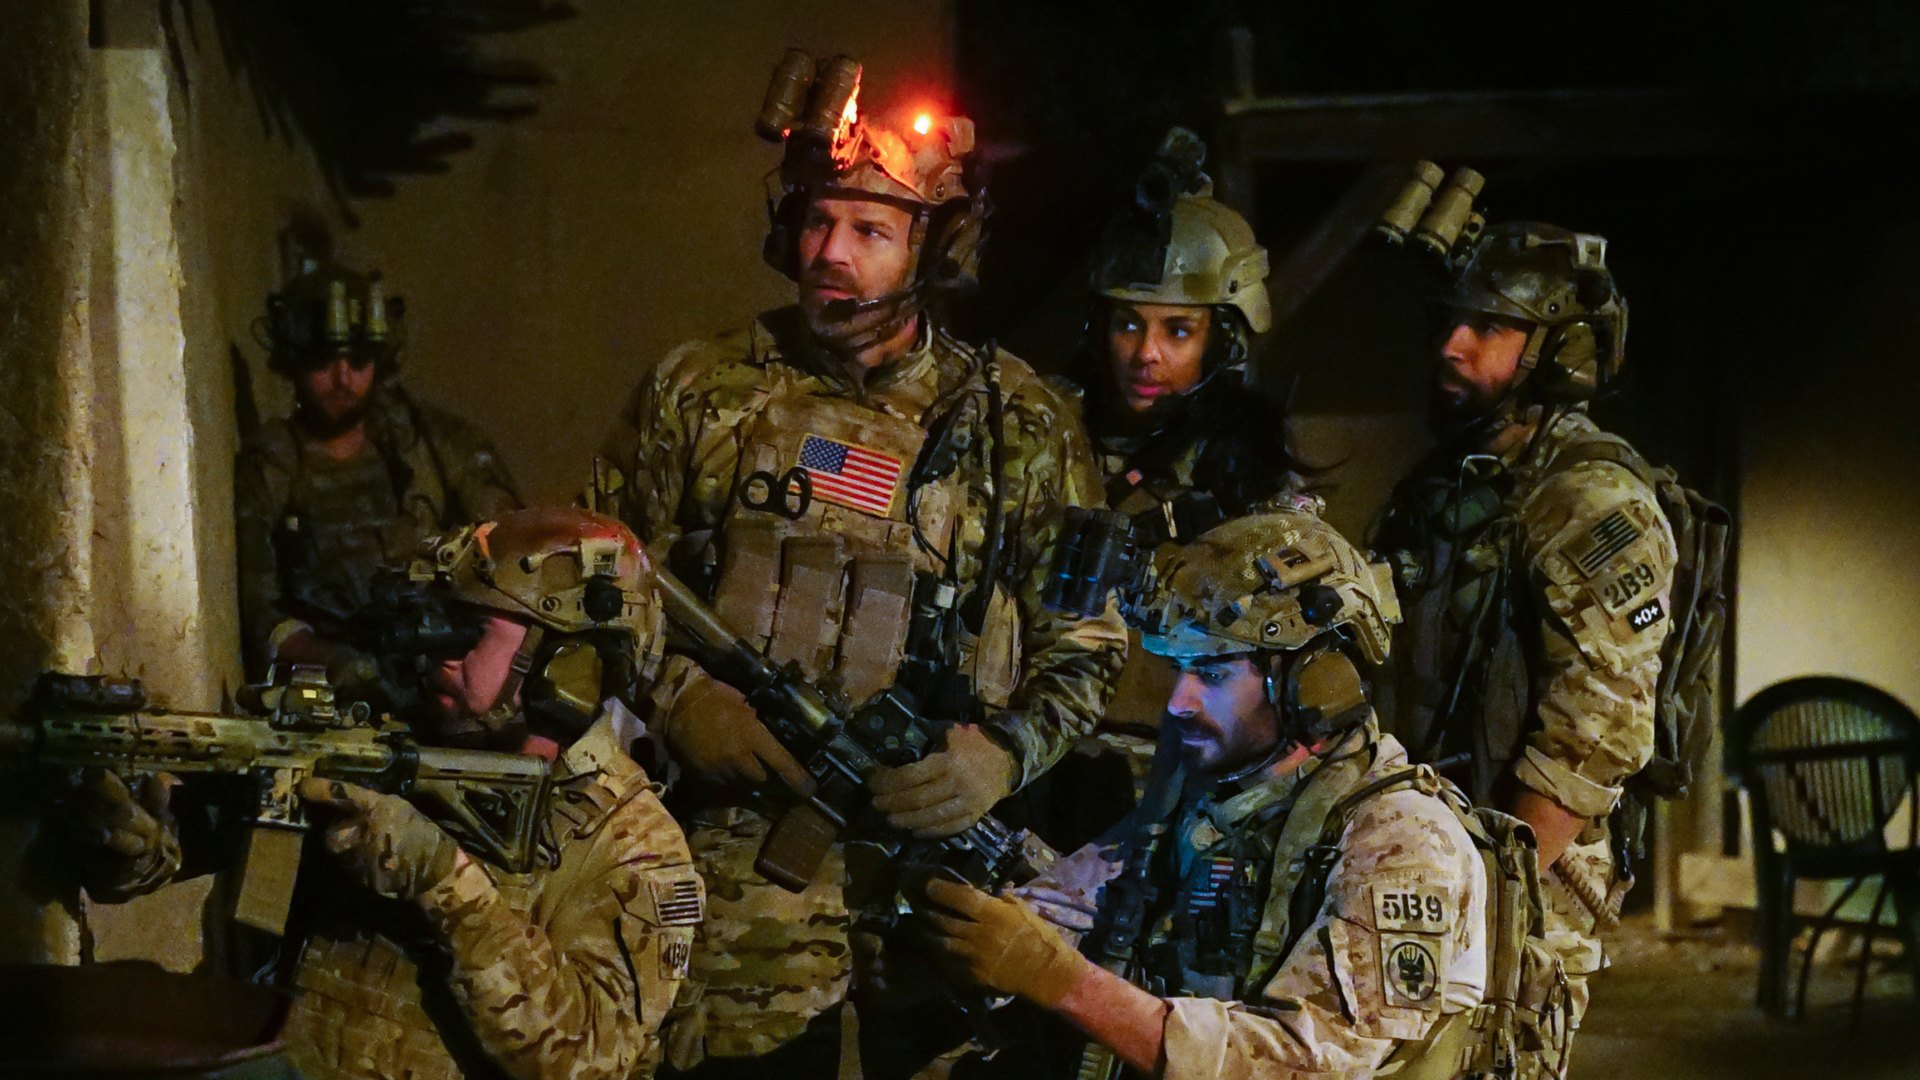 Watch SEAL Team Season 1 Episode 14: Call Out - Full show on CBS All Access